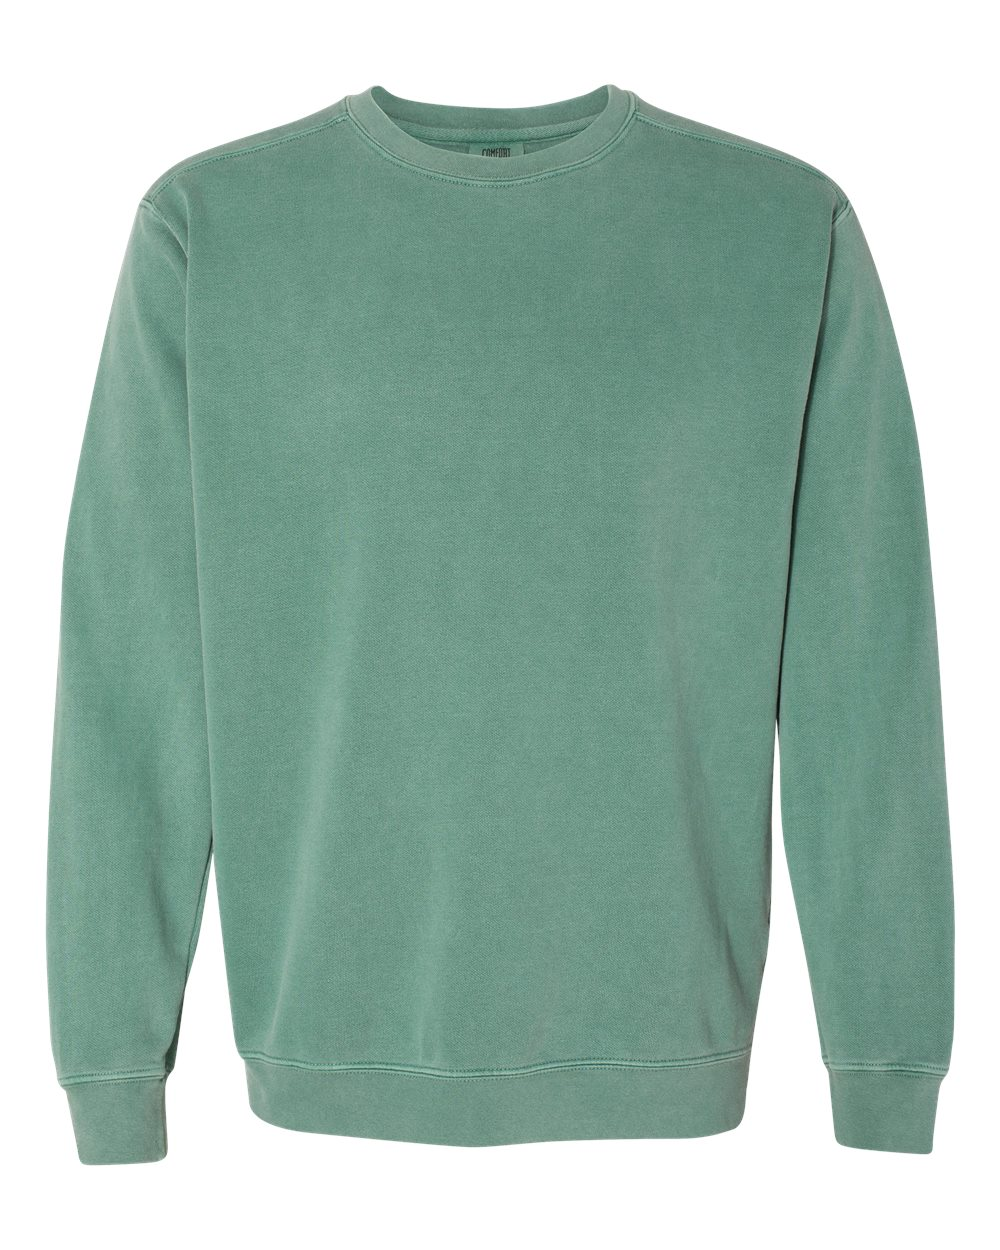 Comfort-Colors-Mens-Garment-Dyed-Ringspun-Crewneck-Sweatshirt-1566-up-to-3XL miniature 42